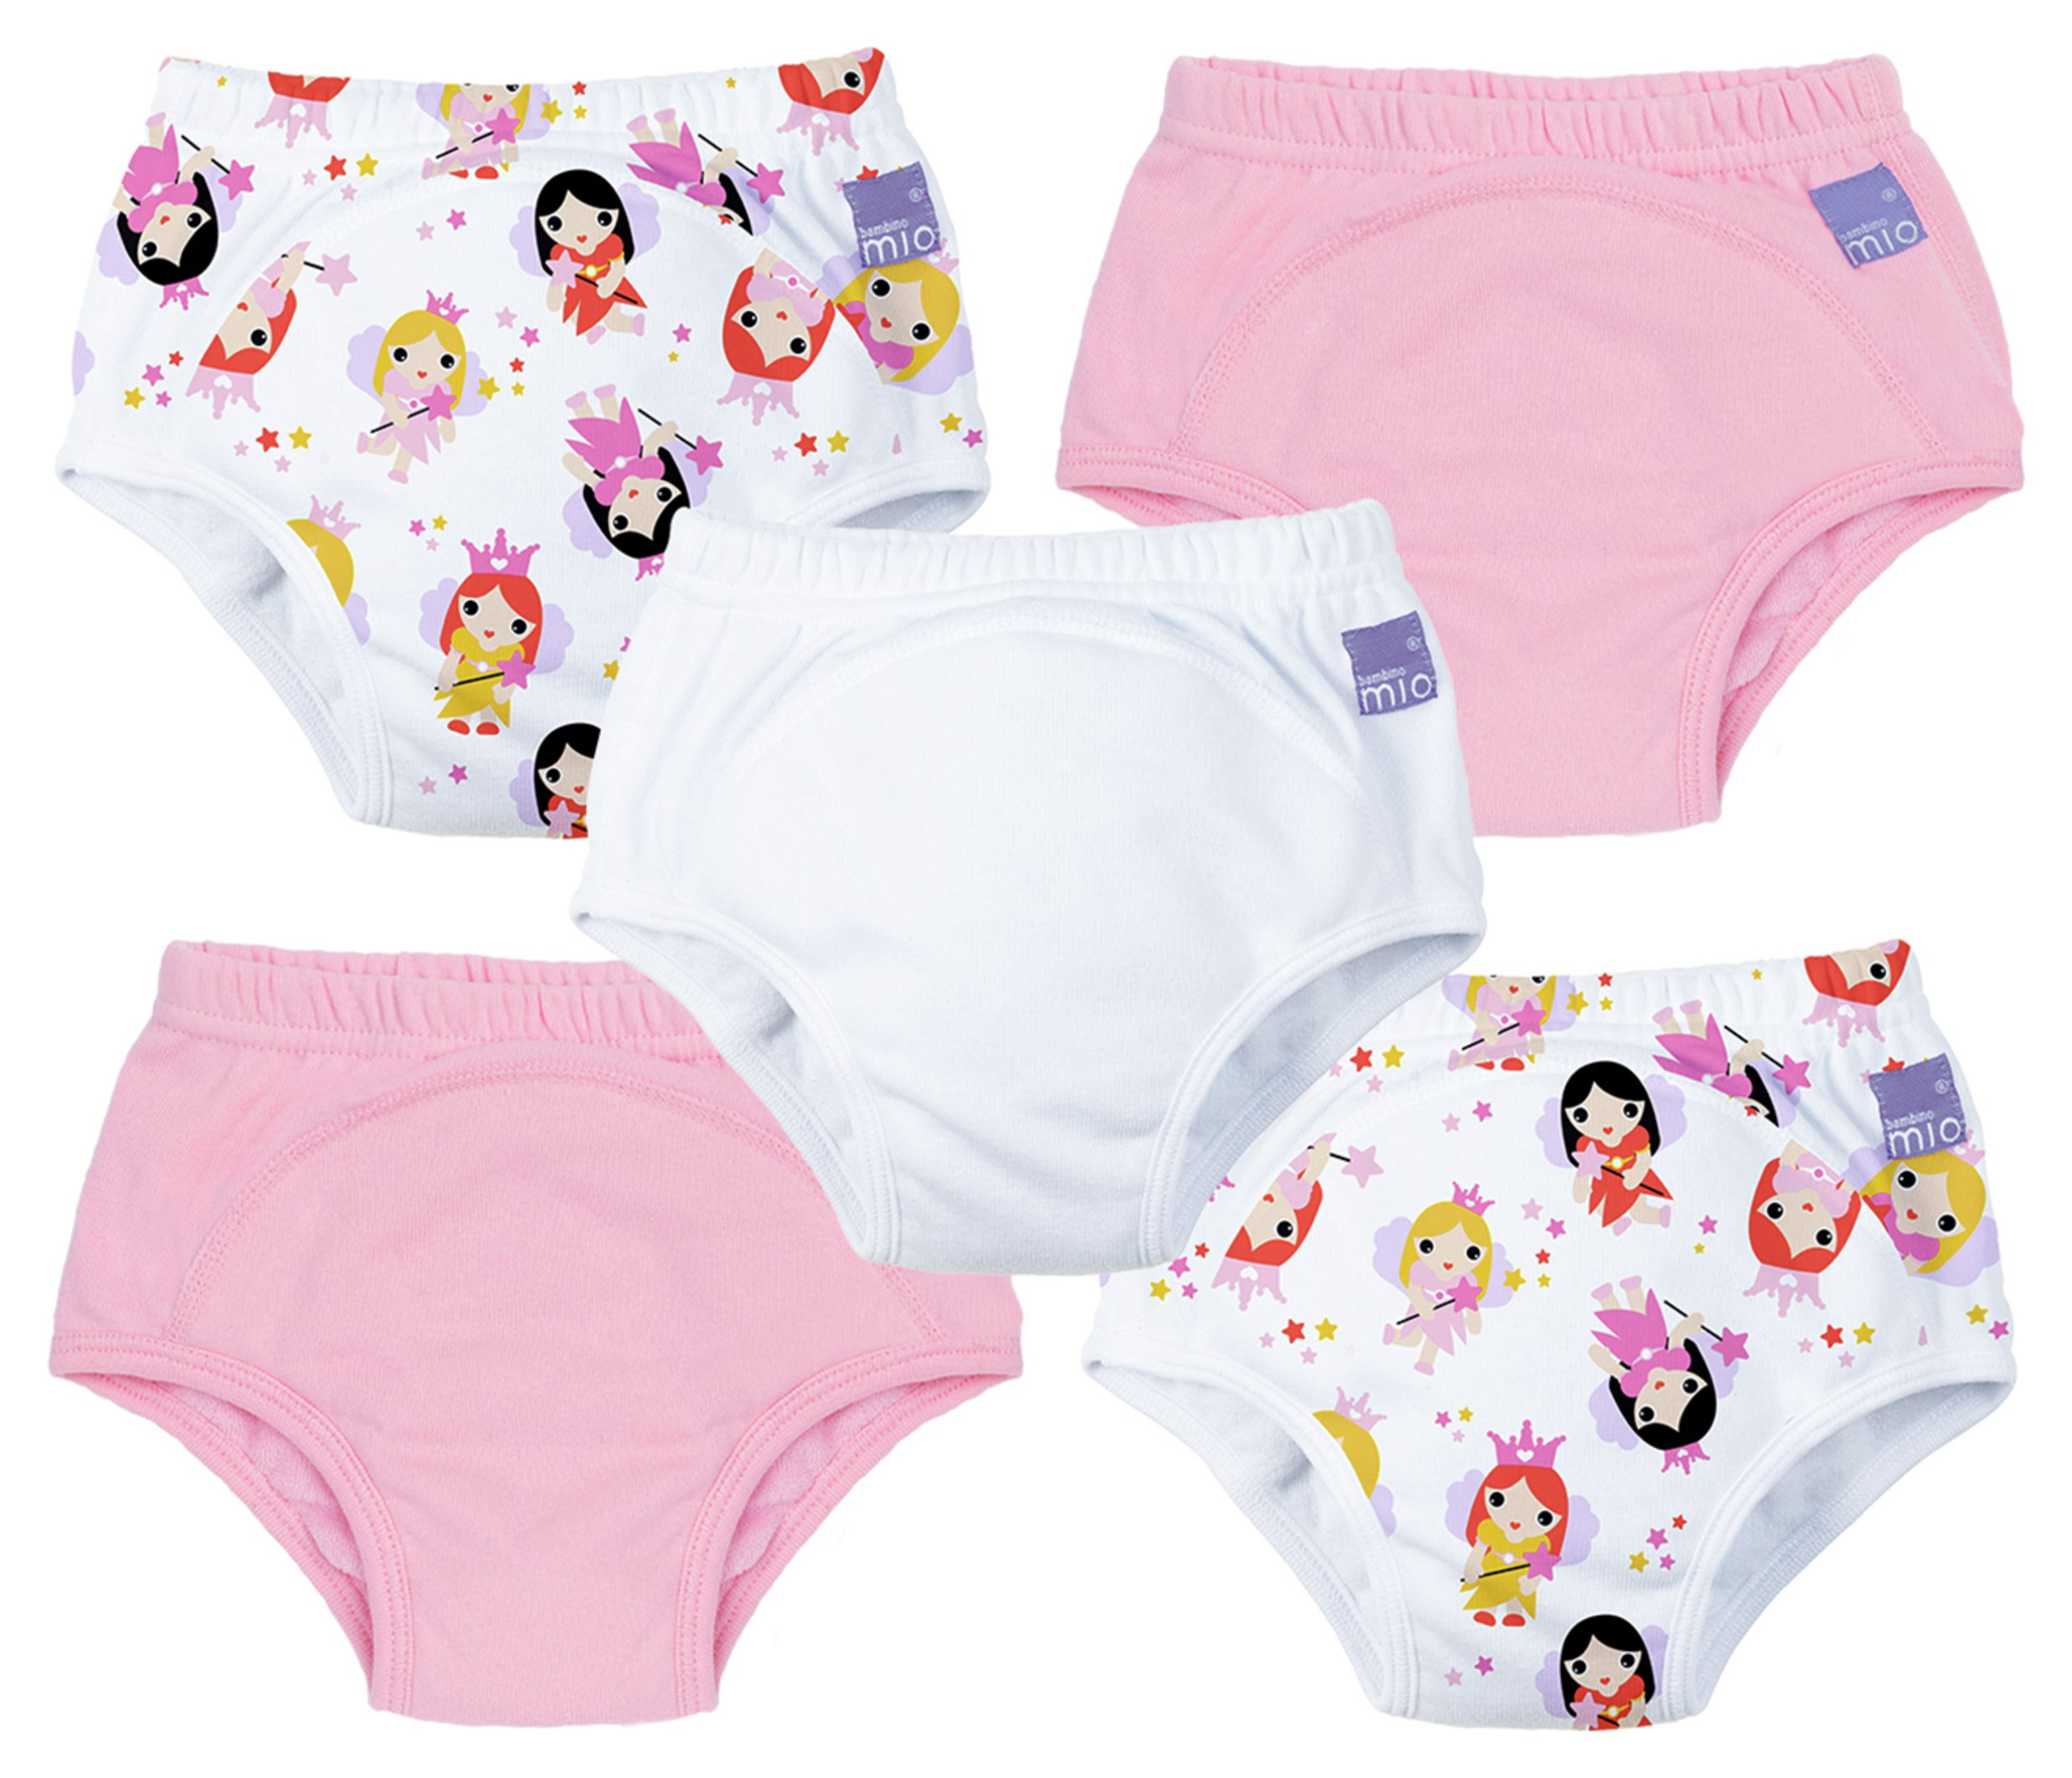 Image of Bambino Mio Fairy Potty Training Pants for 3+ Years - 5 Pack